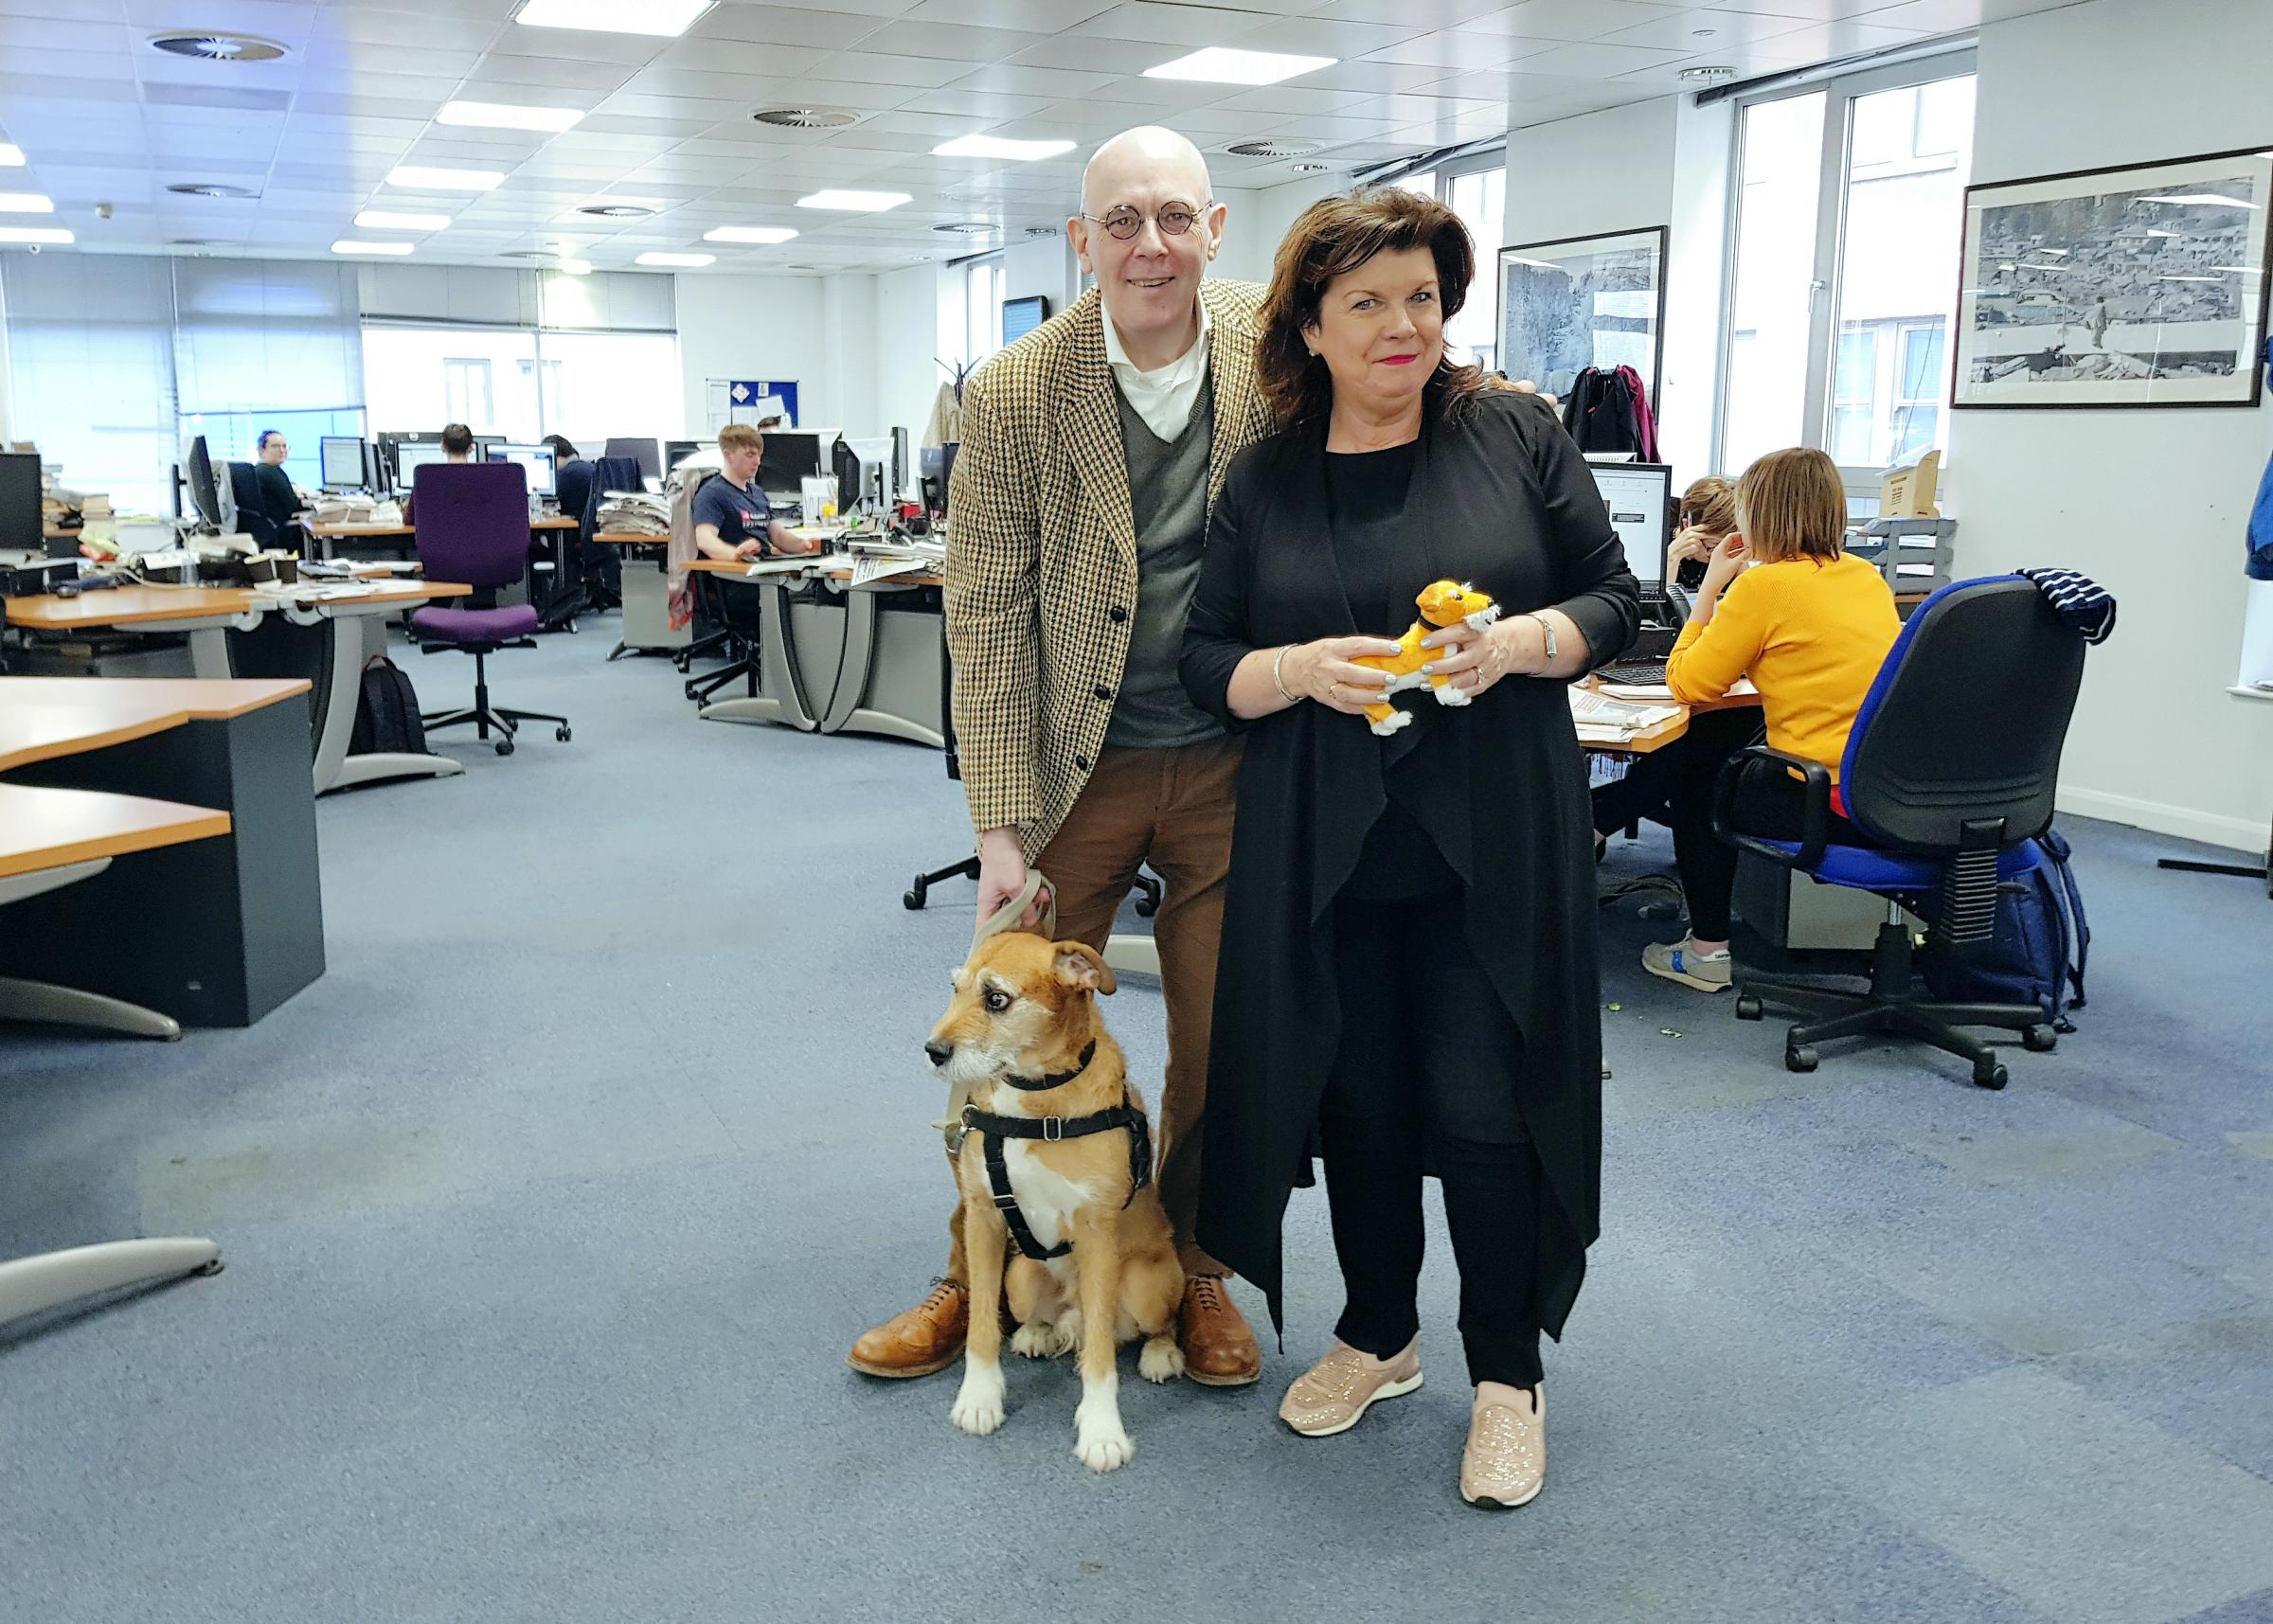 The Wee Ginger Dug (and human Paul Kavanagh) with Elaine C Smith in The National's office. Photograph: Damian Shields